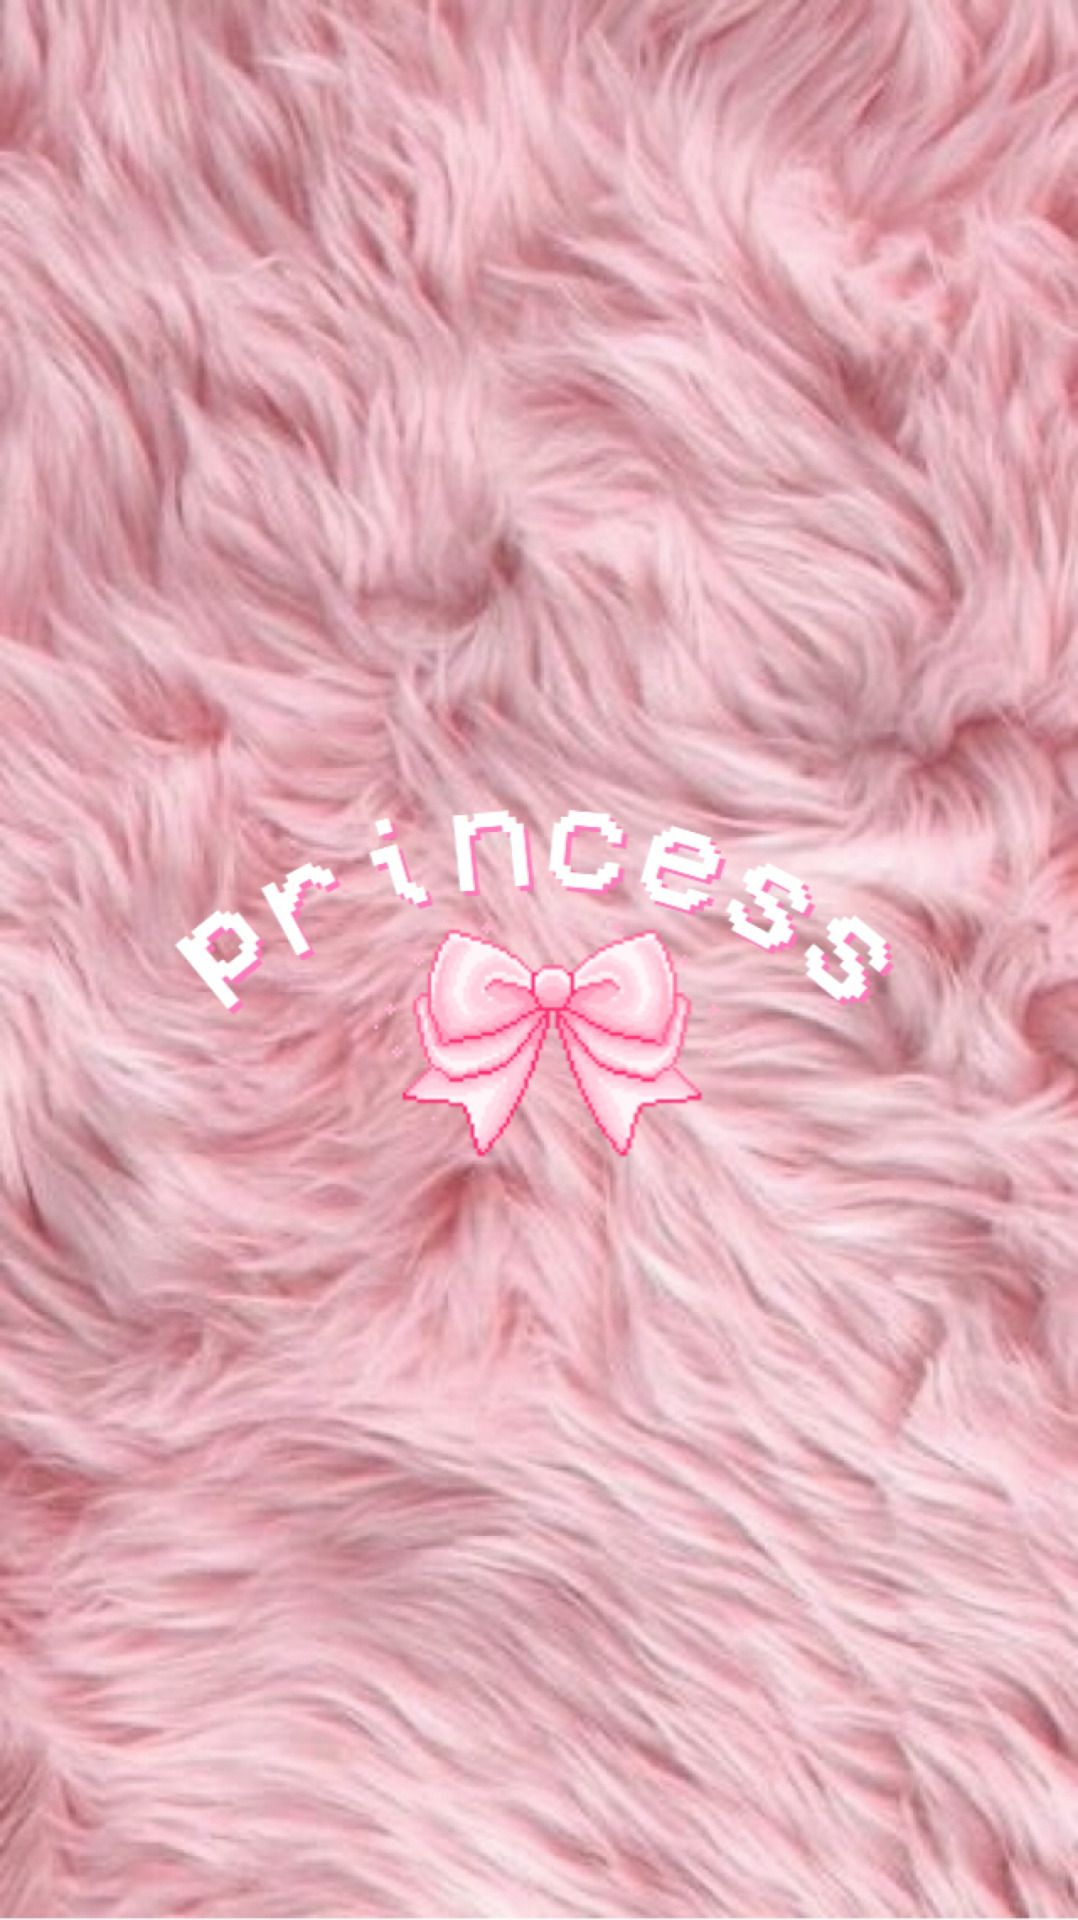 Princess Wallpapers In 2019 Pink Wallpaper Iphone